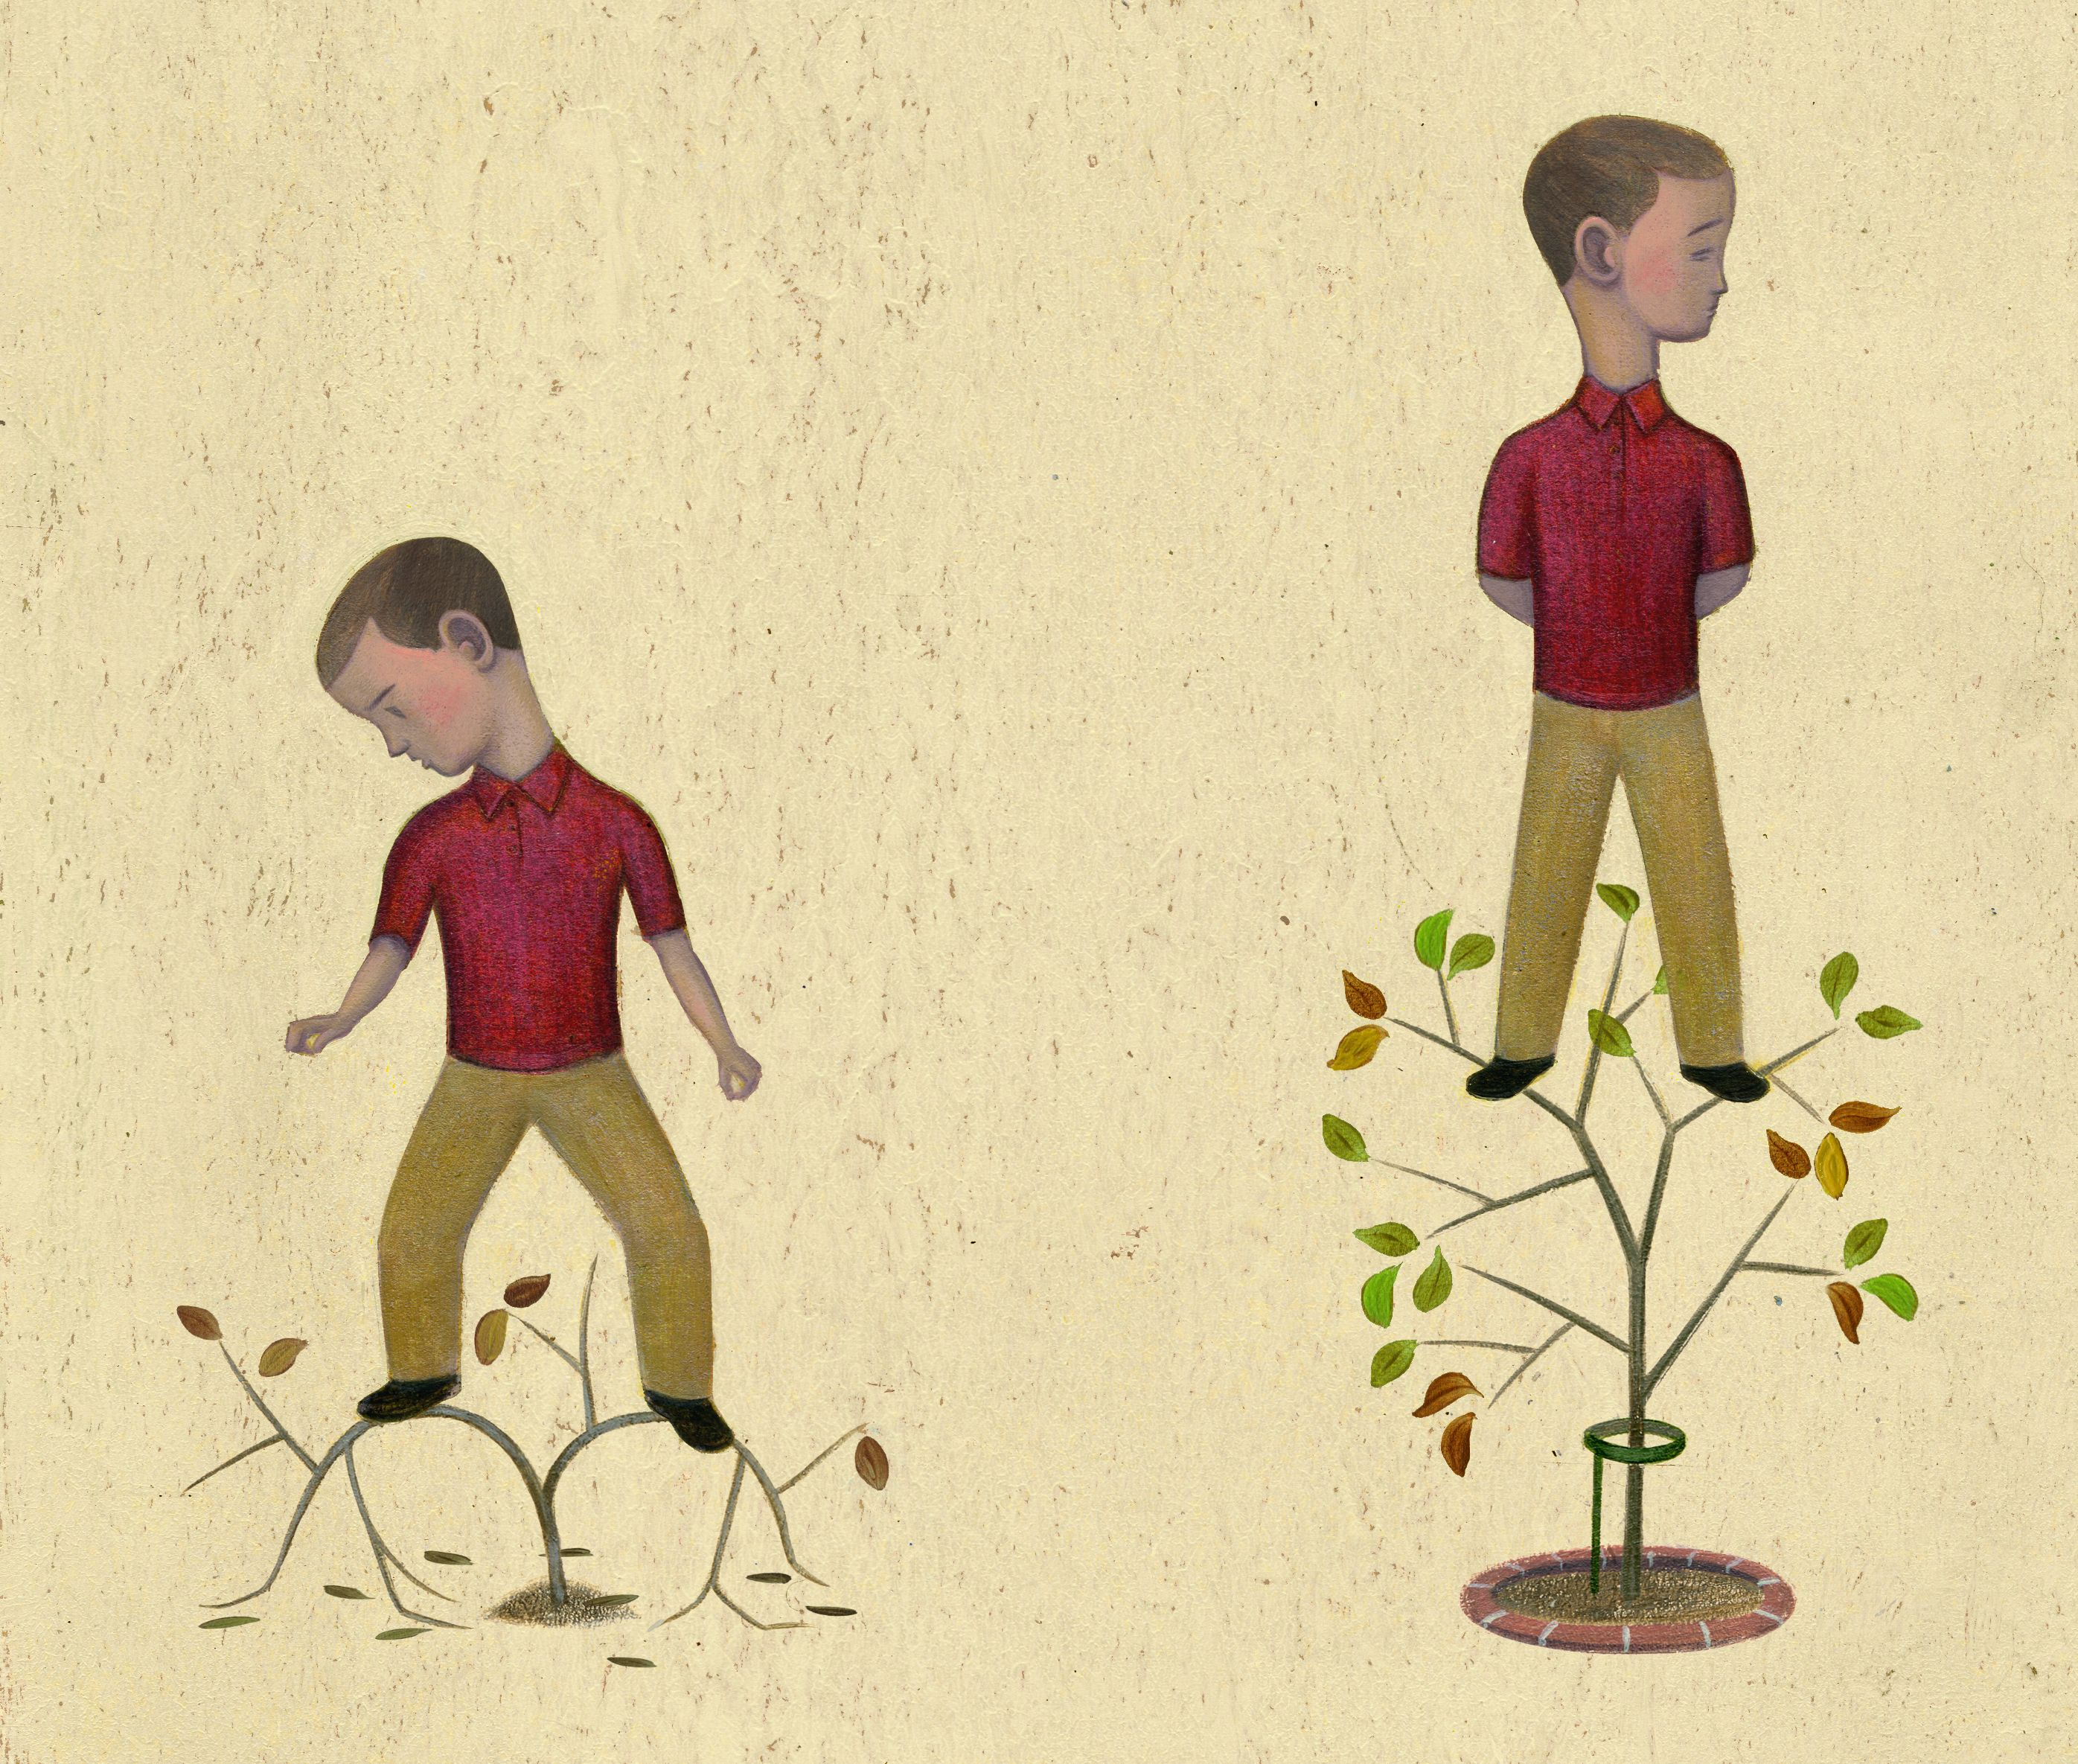 An illustration depicting a child struggling to grow